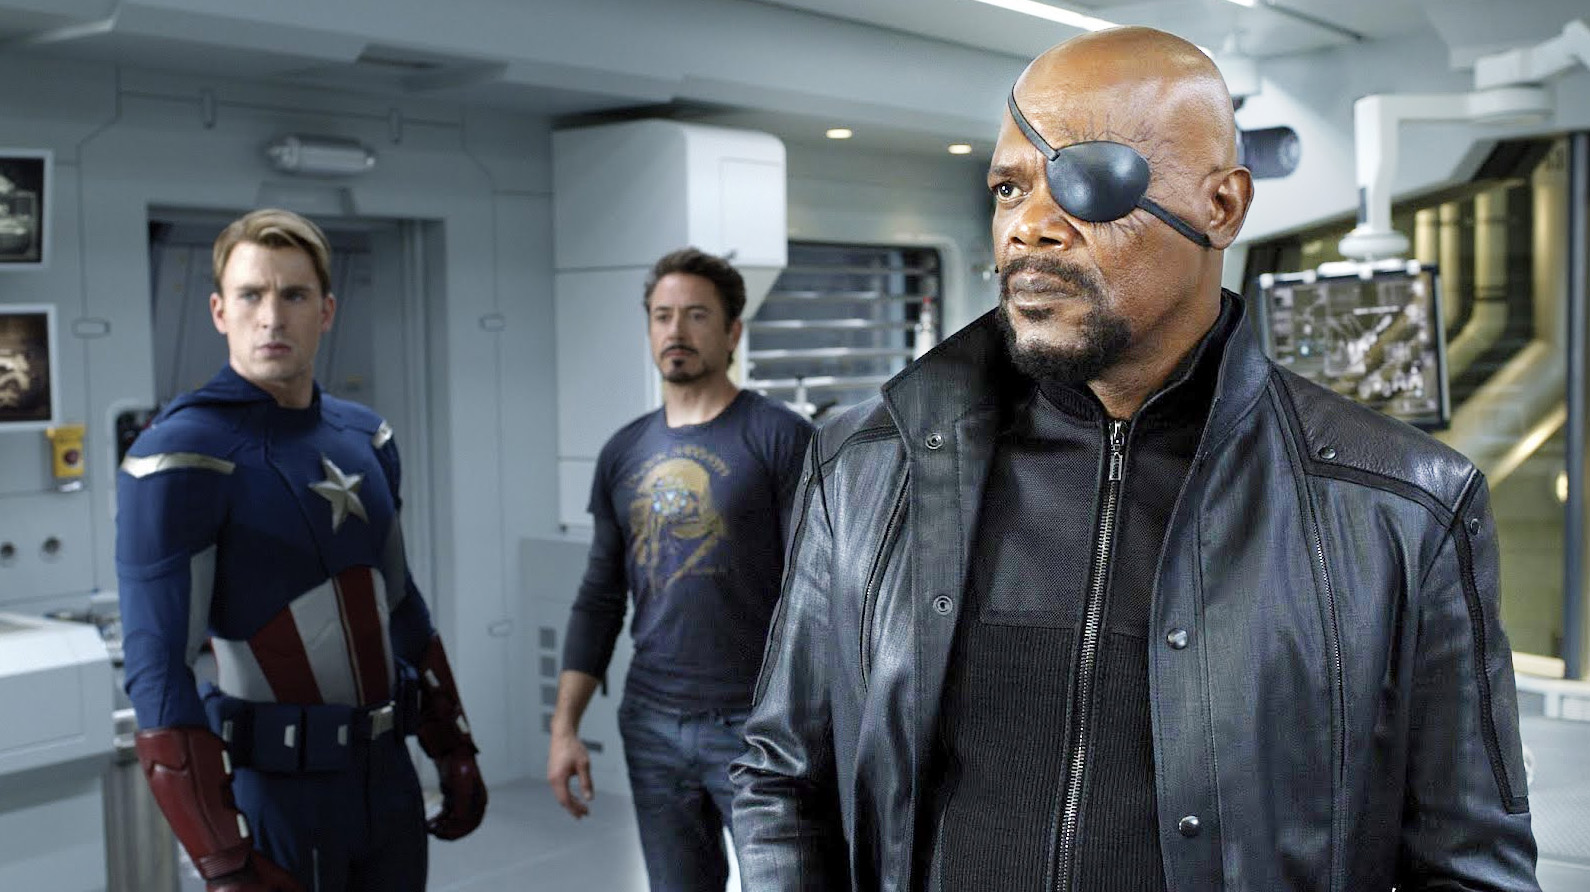 Chris Evans as Thor, Robert Downey Jr as Tony Stark and Samuel L. Jackson as Nick Fury in The Avengers (2012)